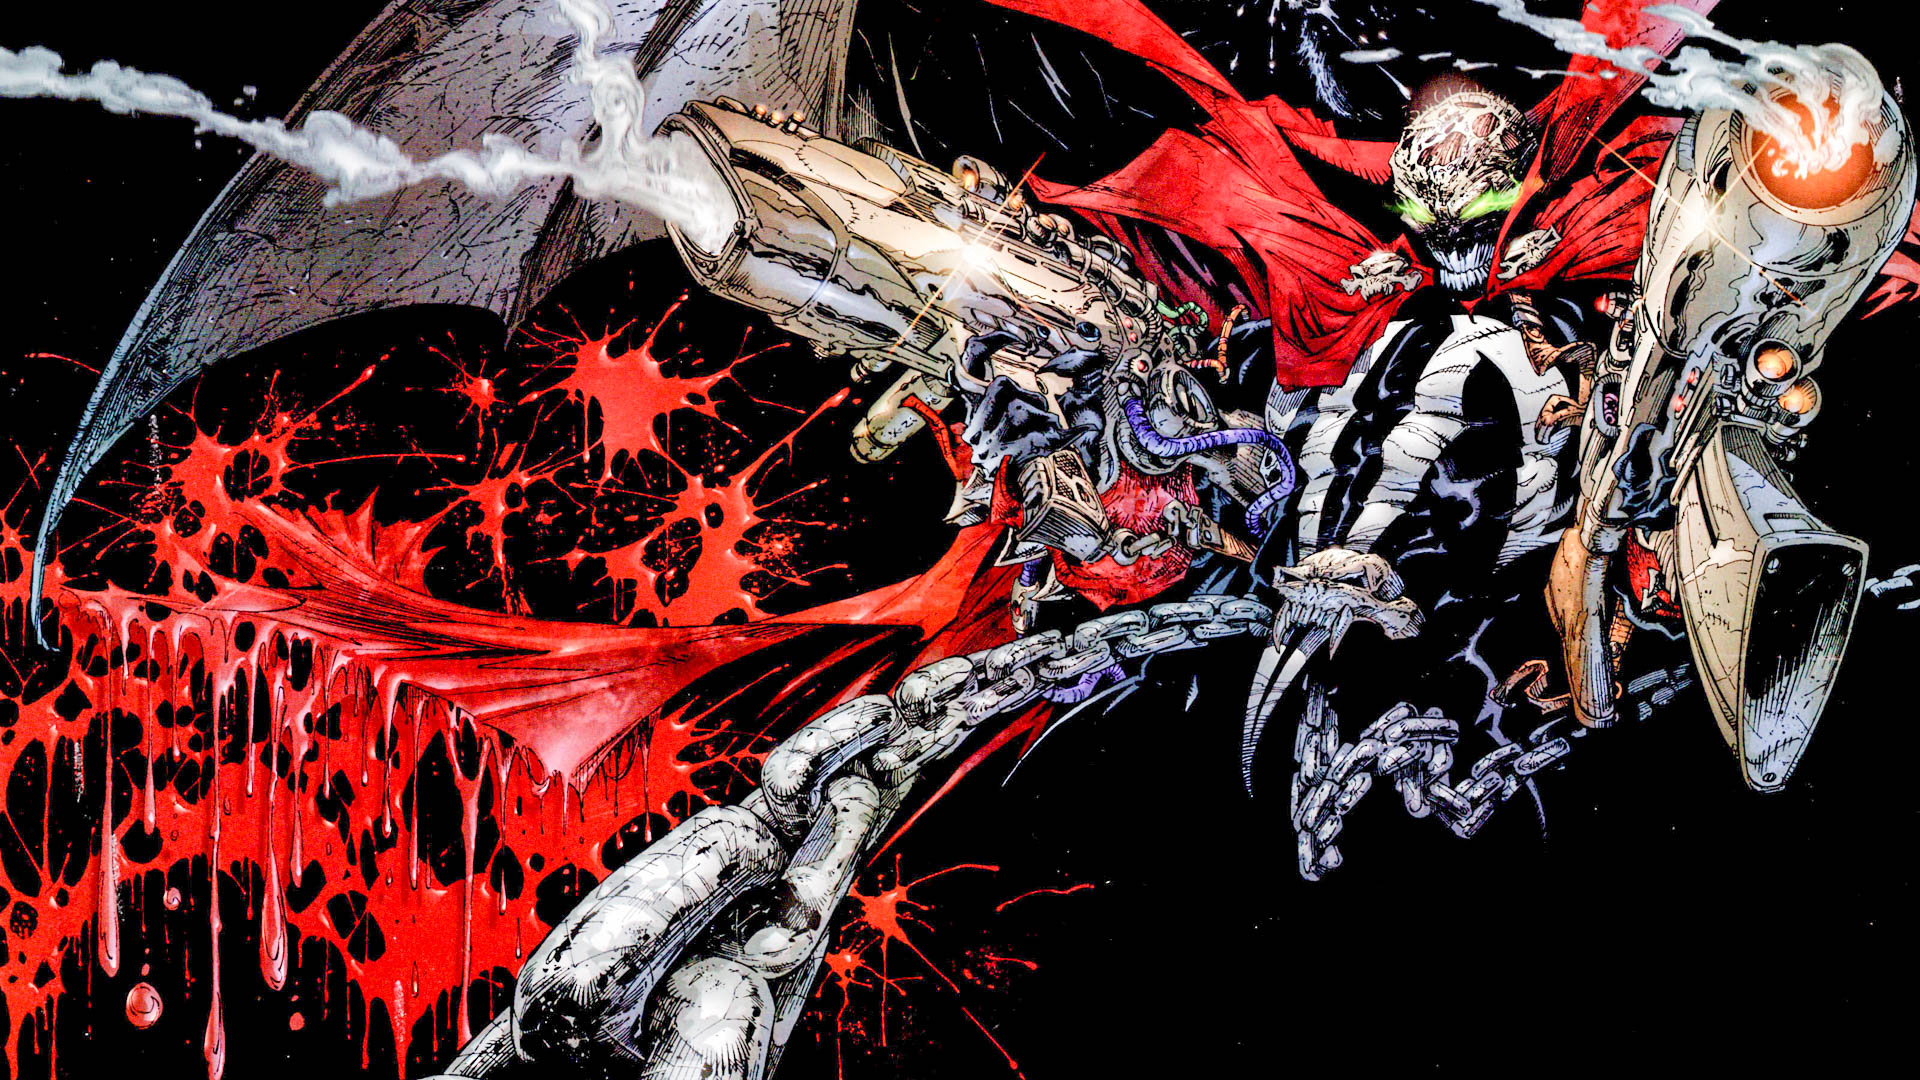 Spawn Awesoome HD Wallpapers In High Definition